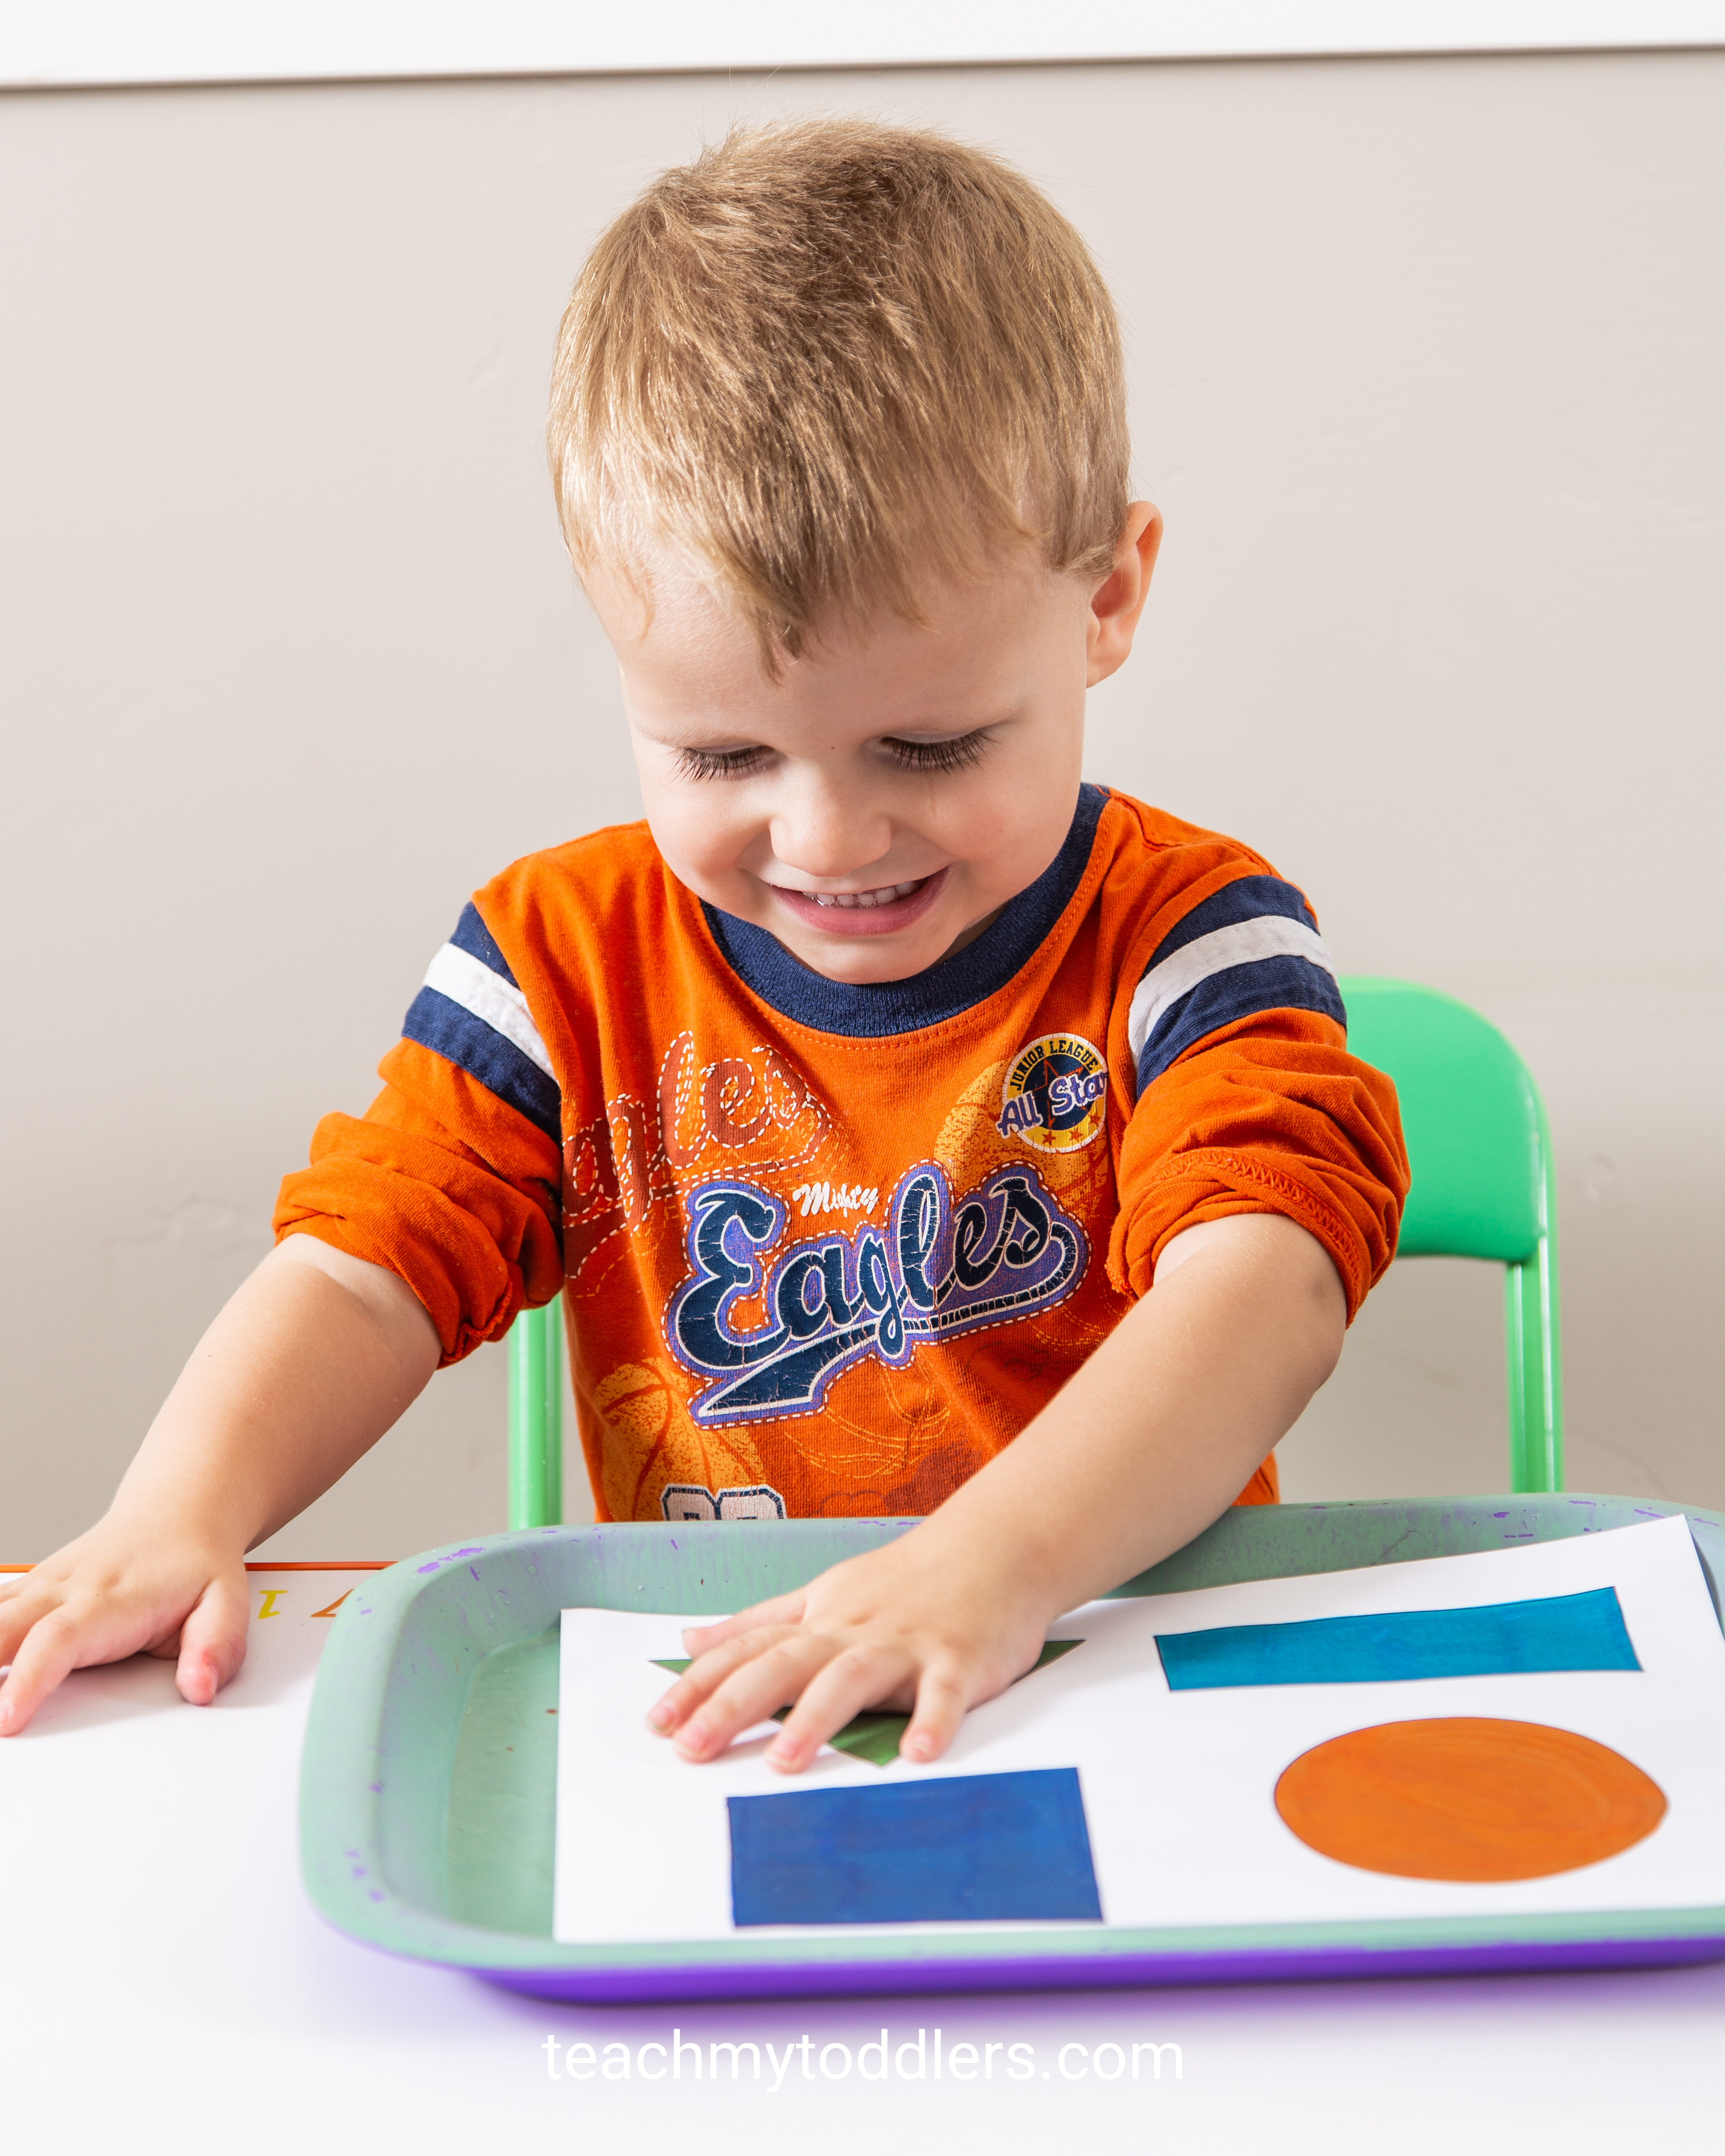 Use these exciting triangle trays to teach your toddlers shapes